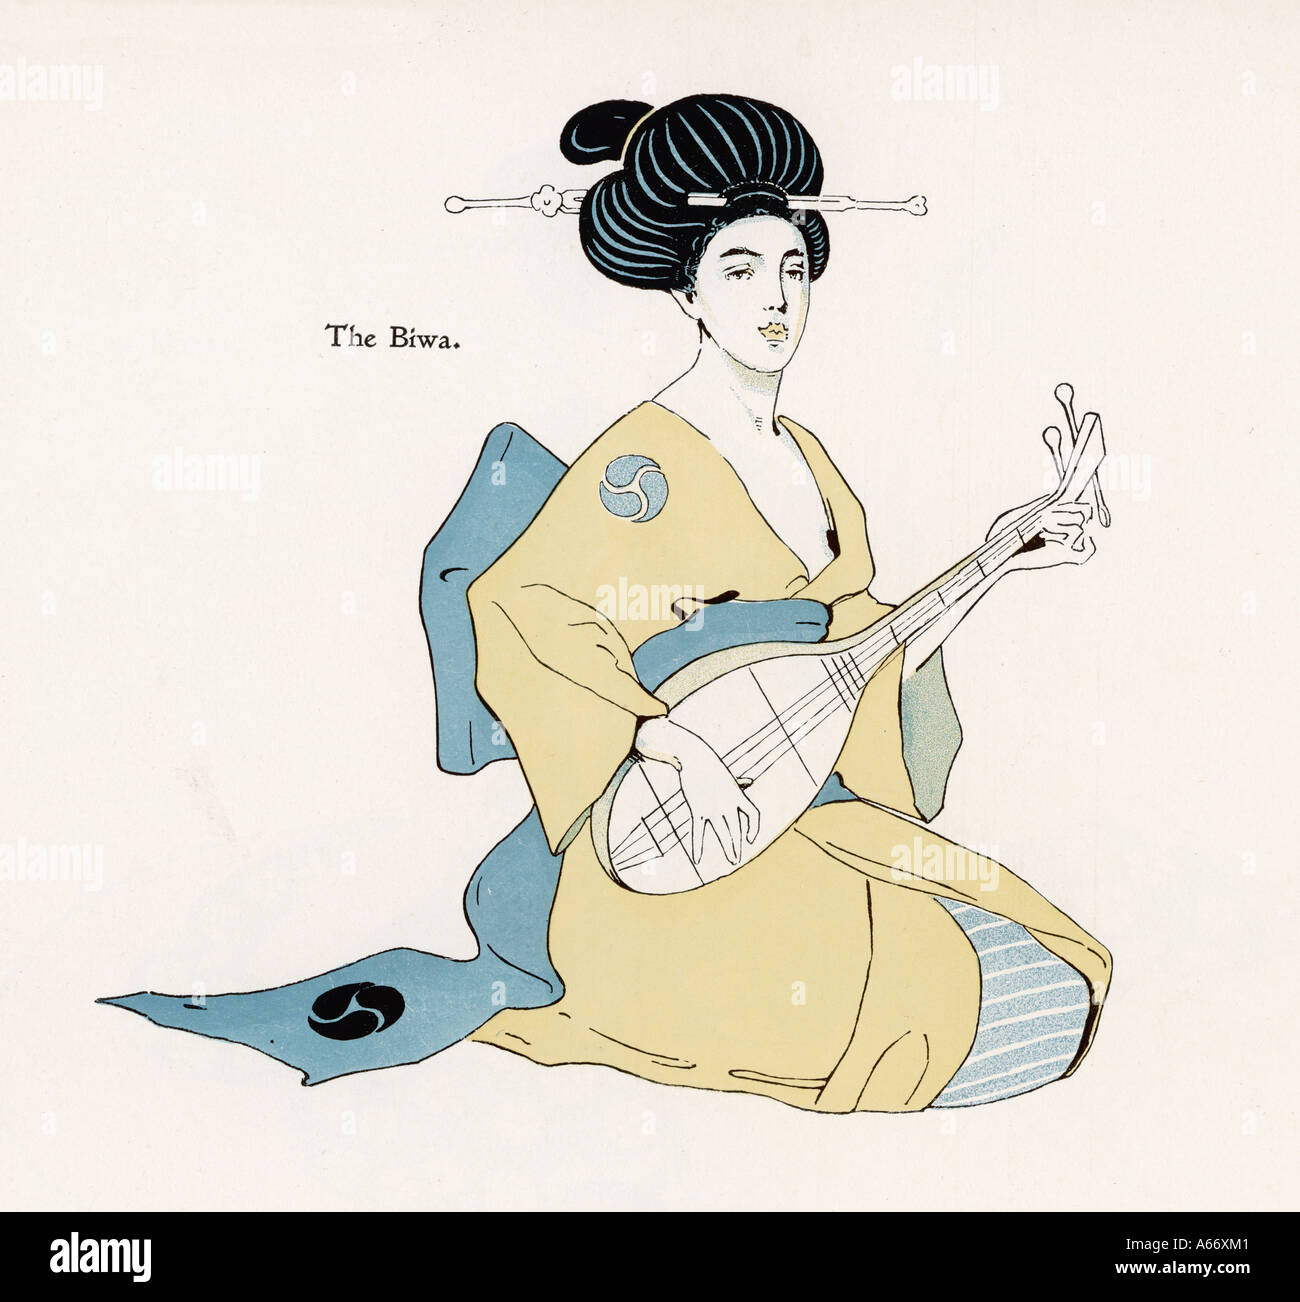 Japan The Biwa - Stock Image